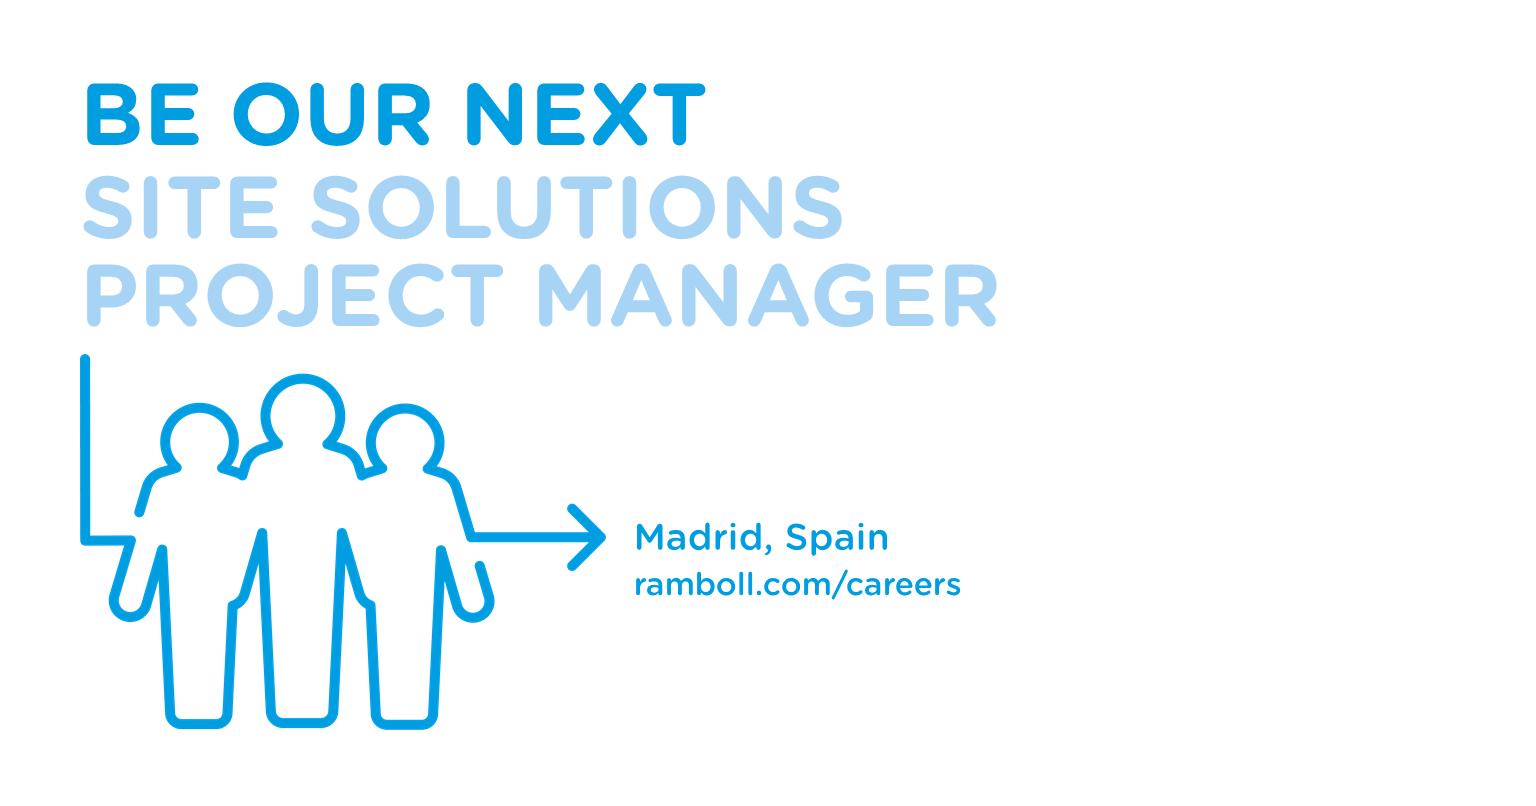 Site Solutions Project Manager Spain